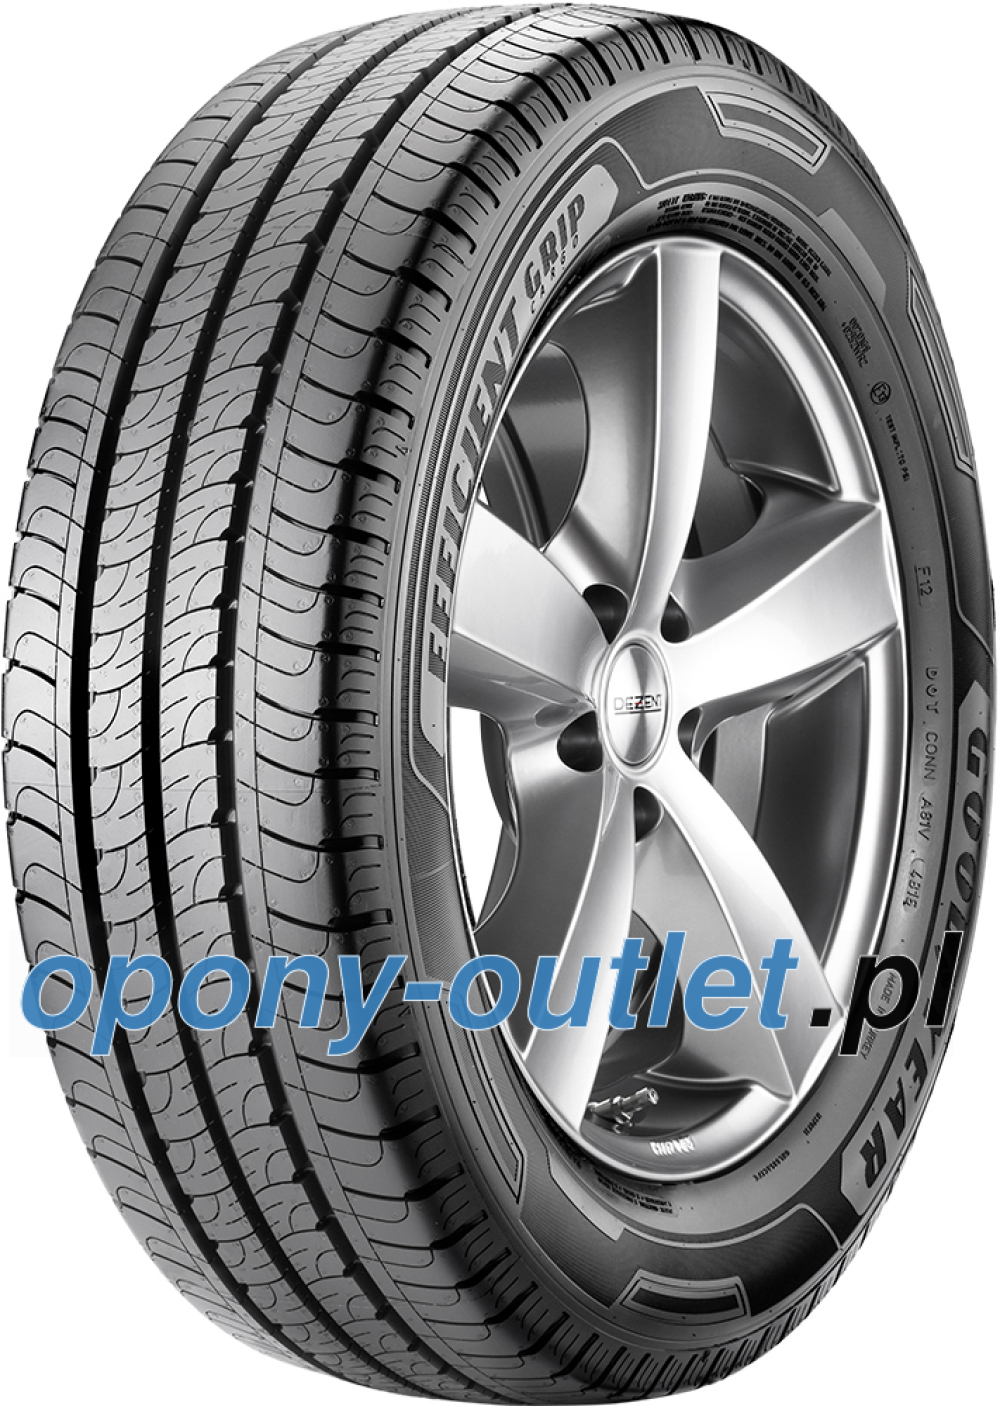 Goodyear EfficientGrip Cargo ( 205/70 R15C 106/104S 8PR )